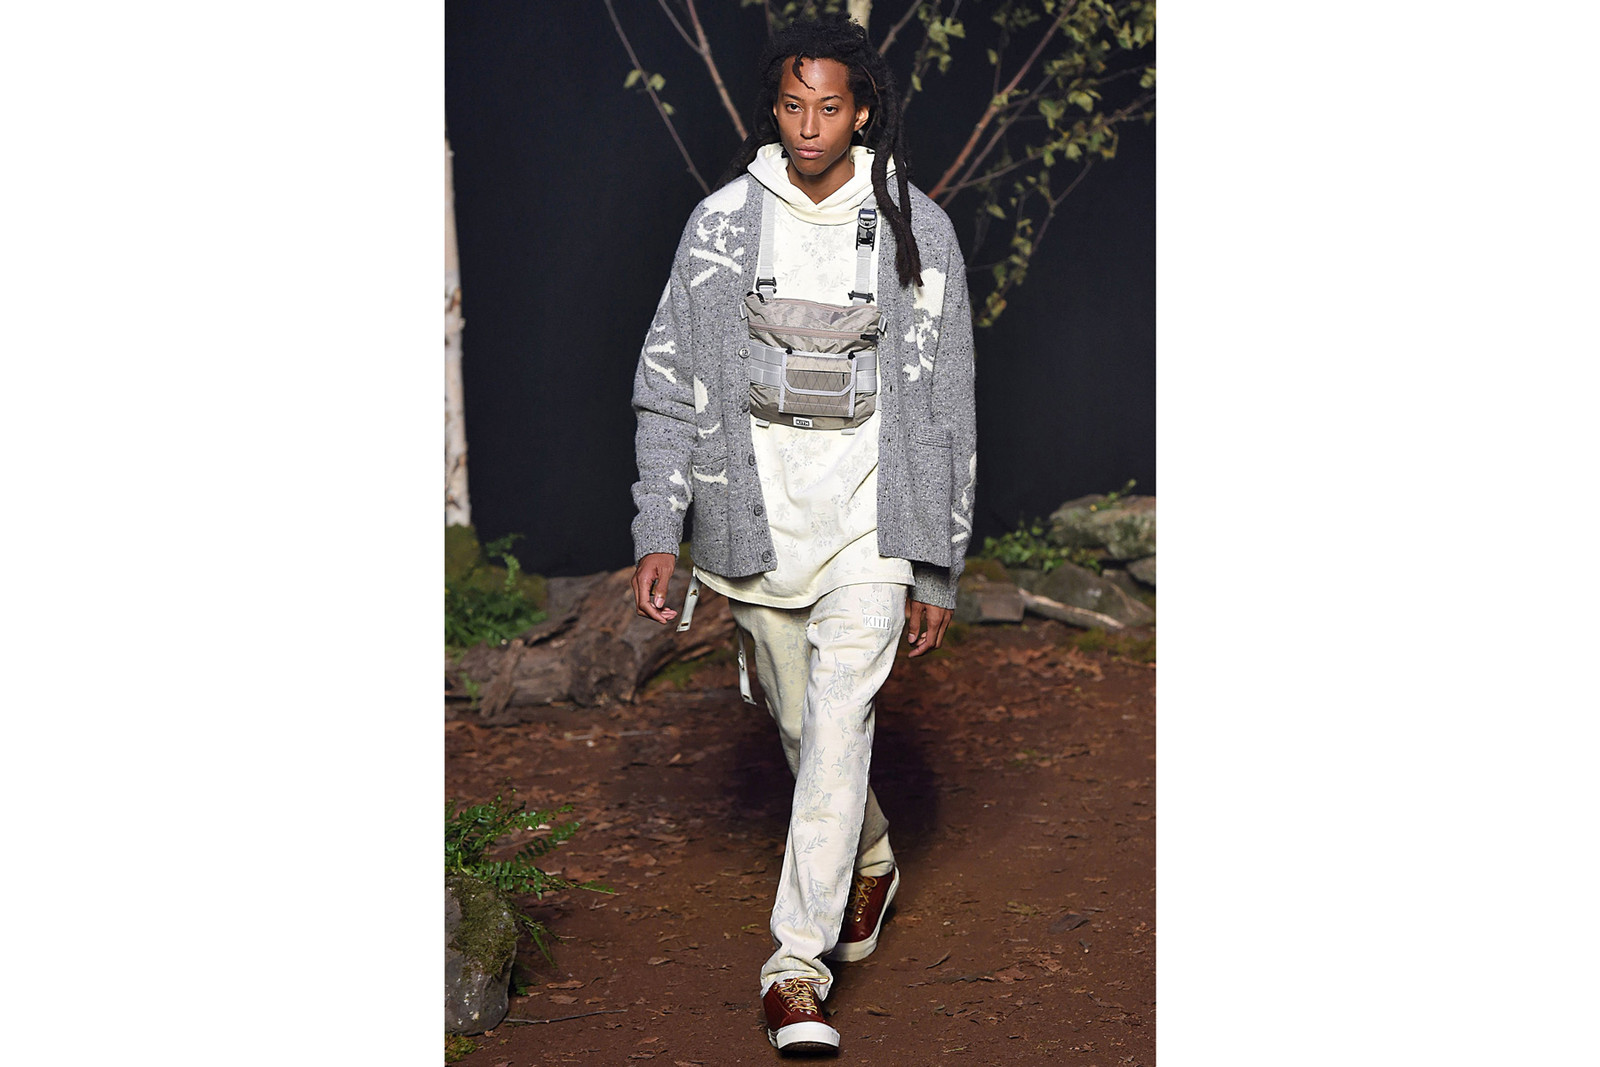 new york fashion week best runway shows presentations pyer moss matthew adam dolan raf simons calvin klein 205w39nyc kith park Deveaux tommy ton spring summer 2019 fall winter 2018 collection collaborations versace tommy hilfiger greg lauren vans converse ugg mastermind japan world ronnie fieg